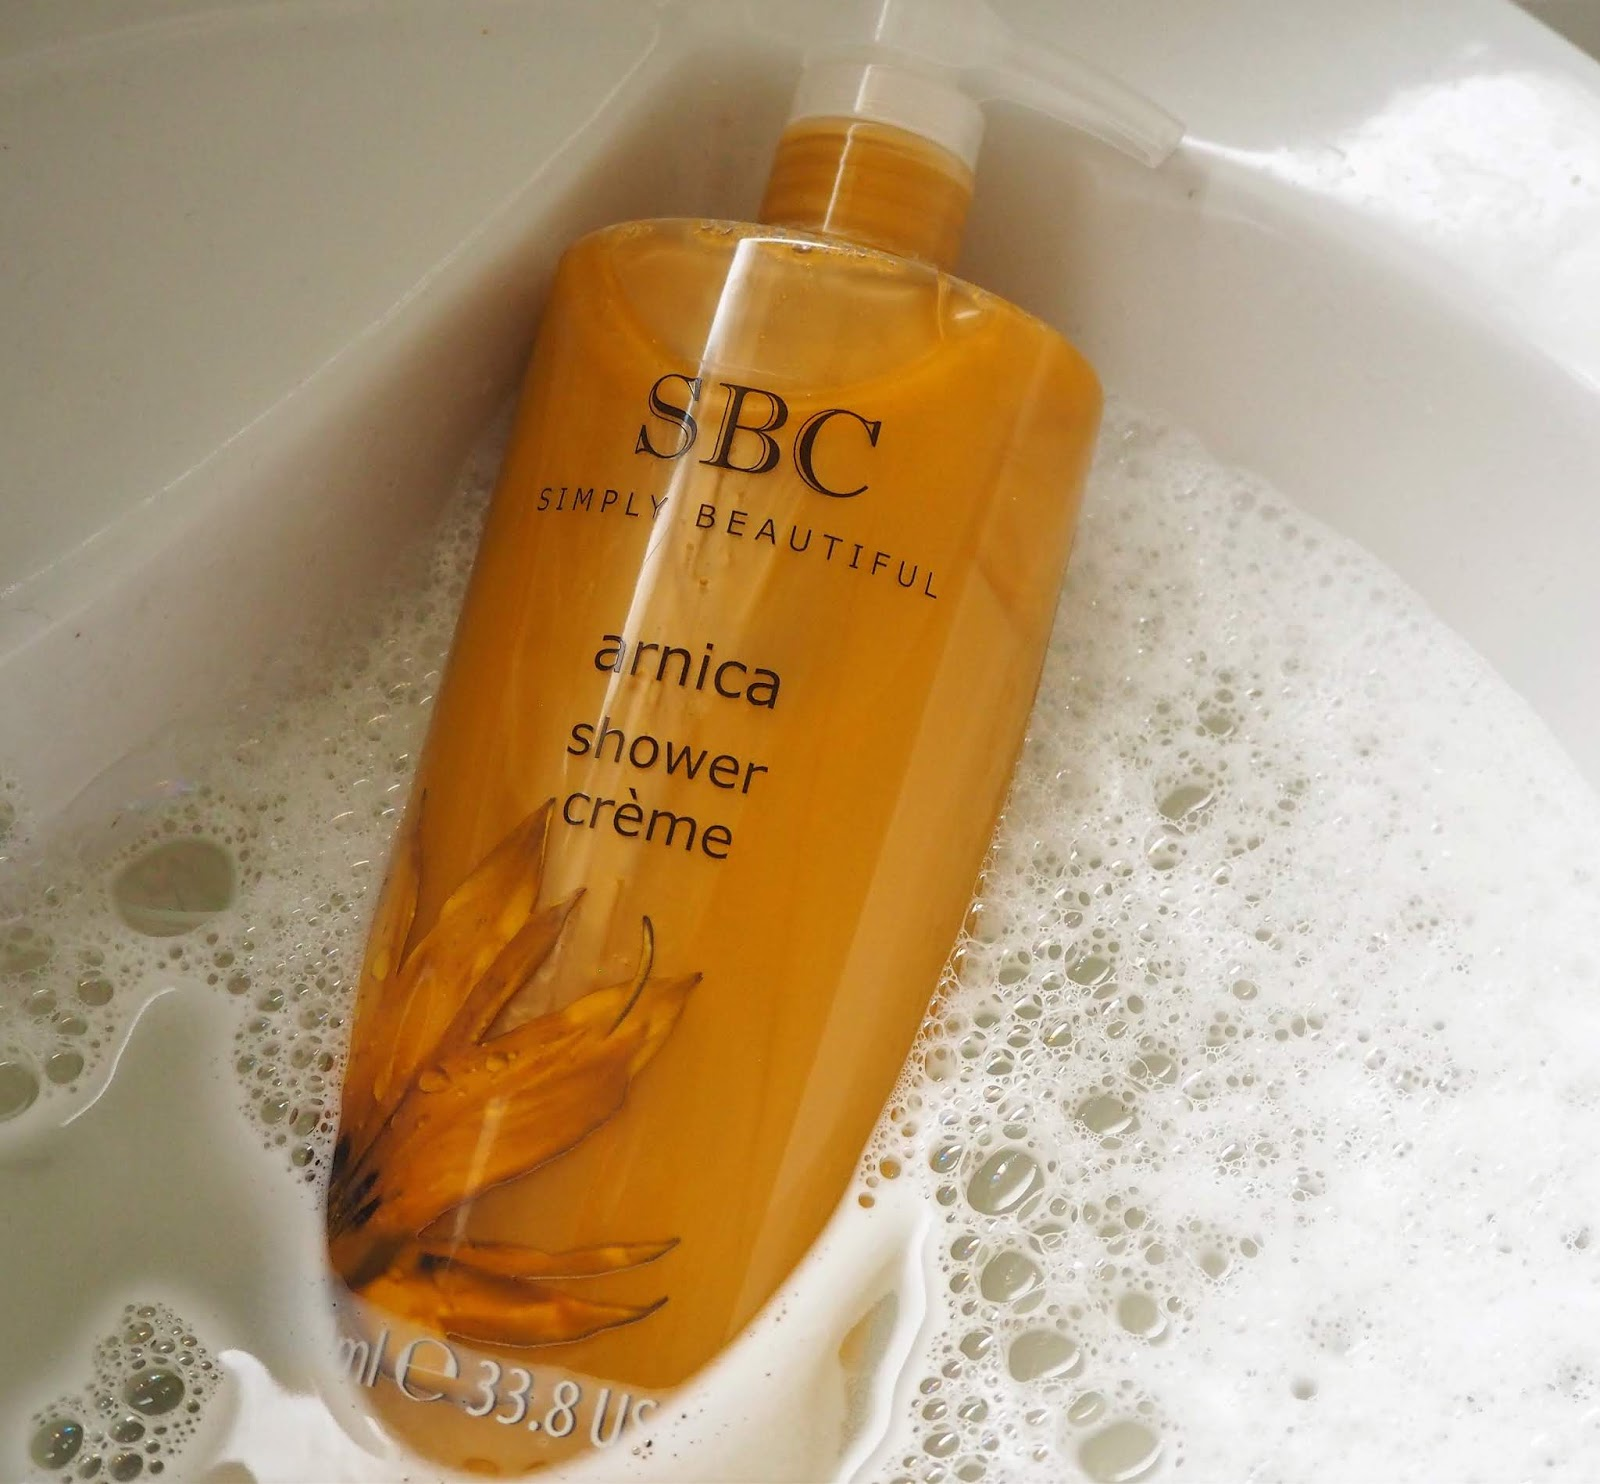 Arnica shower creme swatch